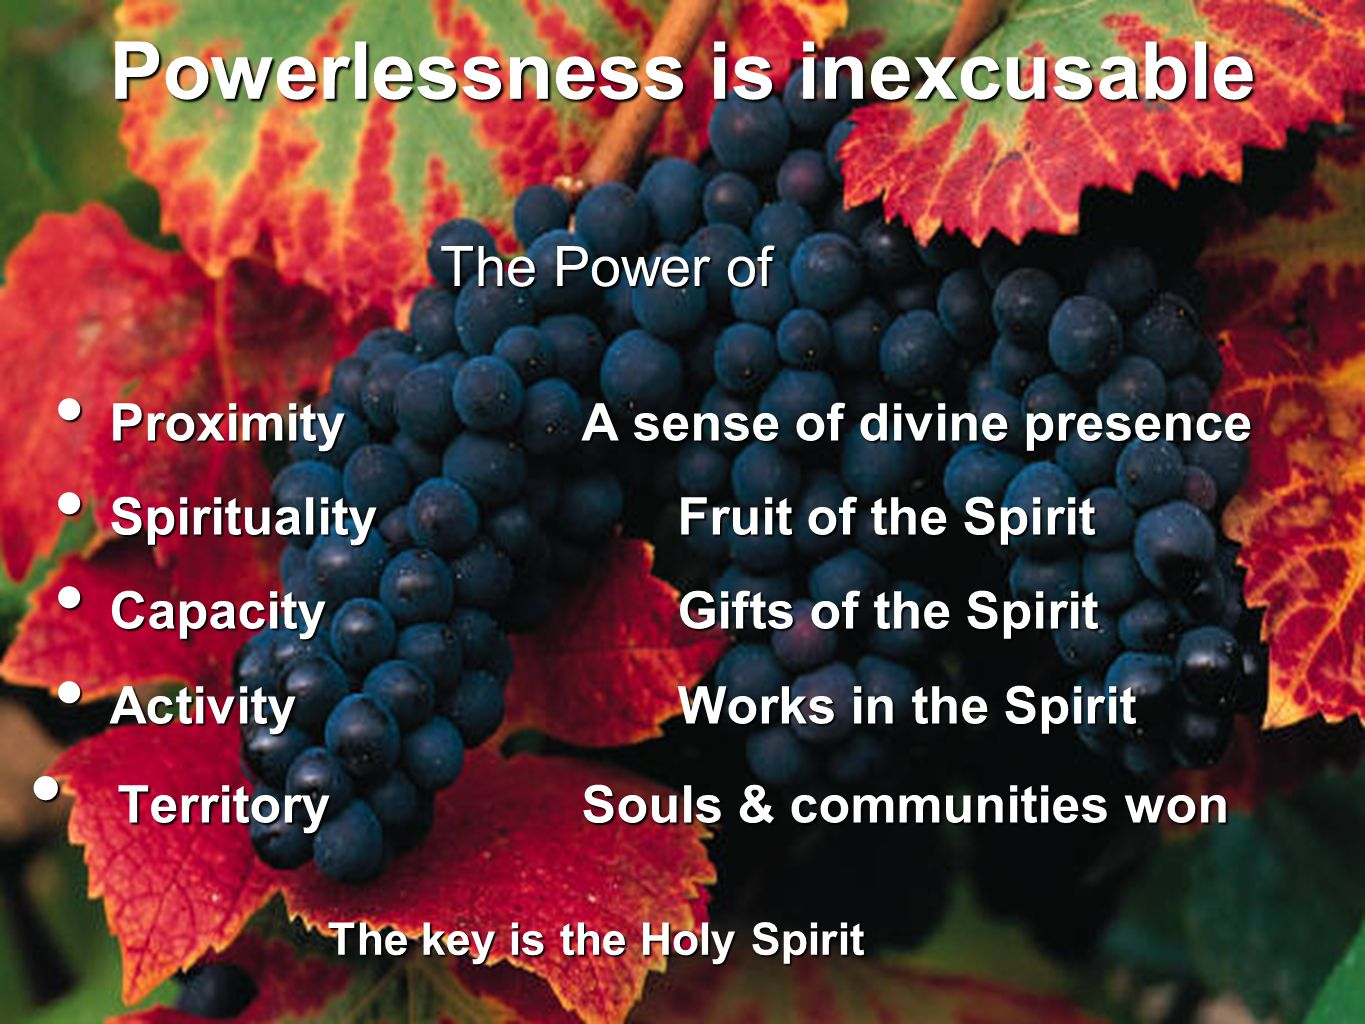 Powerlessness is inexcusable ProximityA sense of divine presence ProximityA sense of divine presence Spirituality Fruit of the Spirit Spirituality Fru